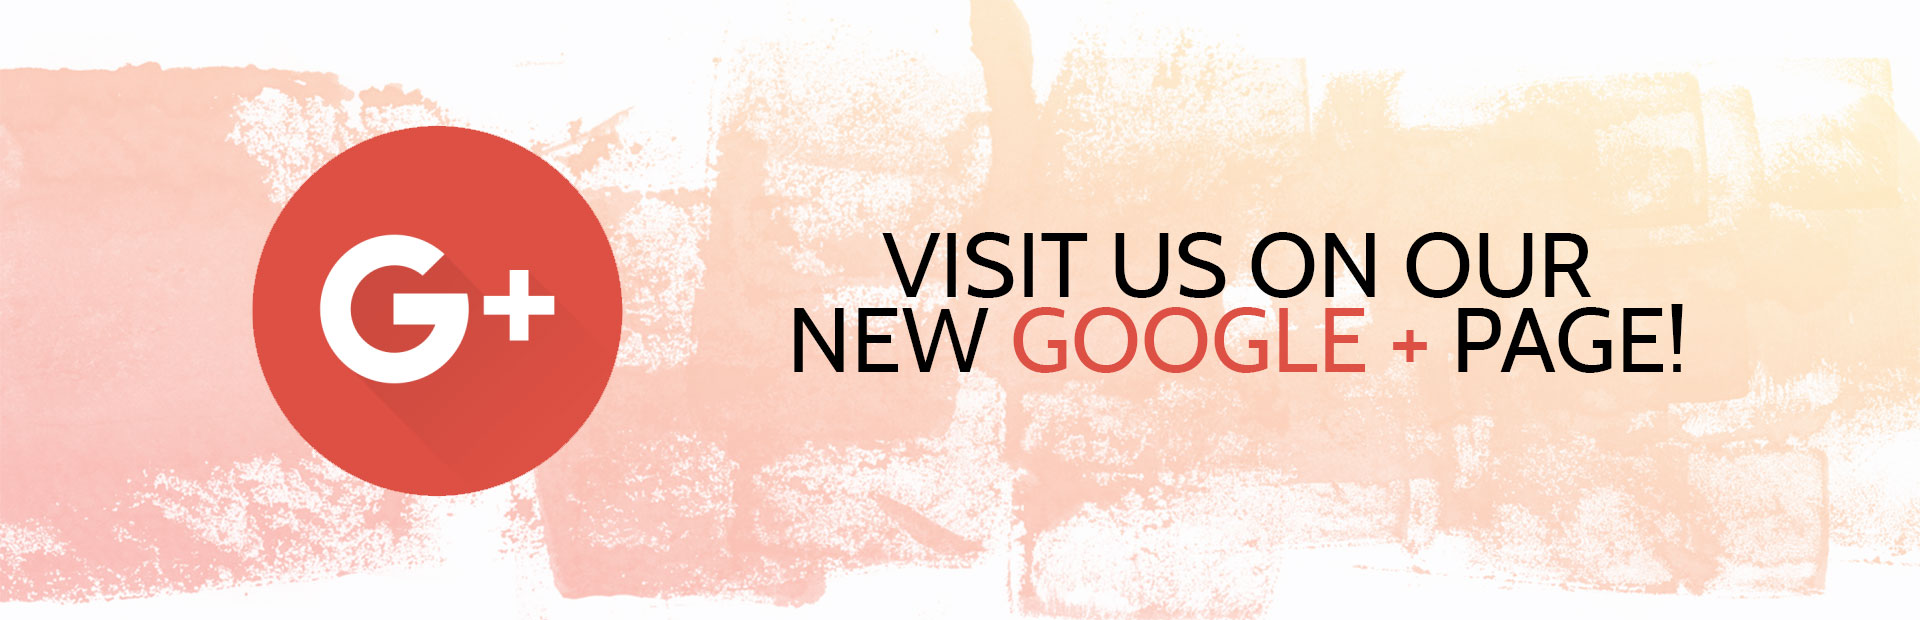 Click here to visit us on our new Google+ page!